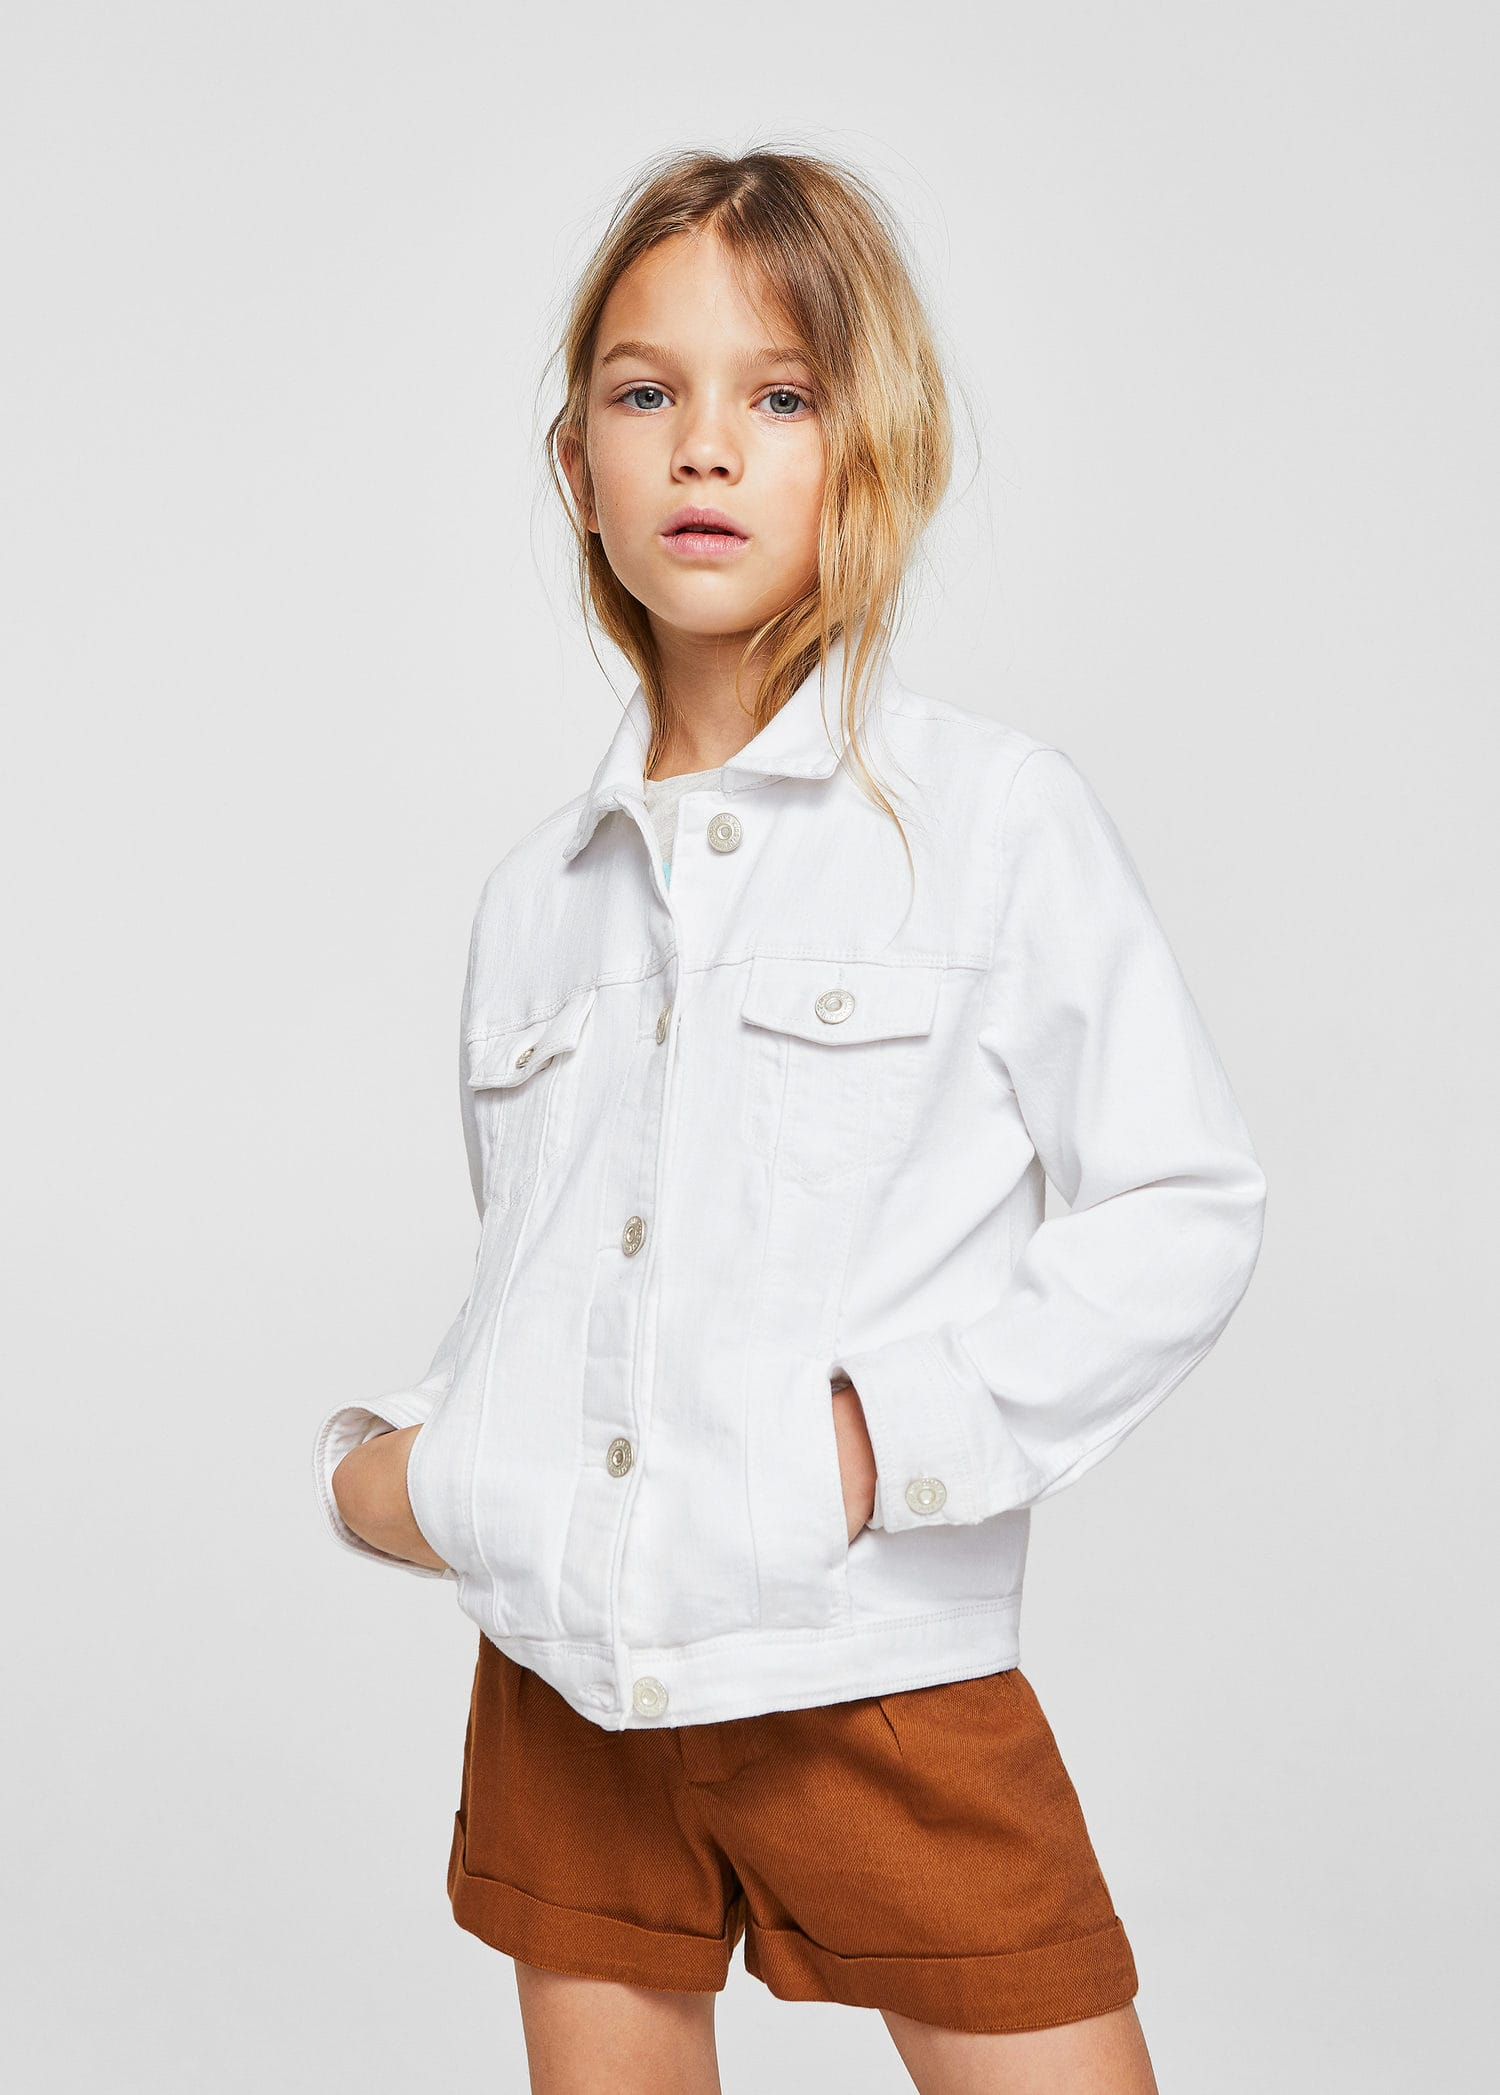 Mode Fille 2019   MANGO Kids France aca4d85999b8